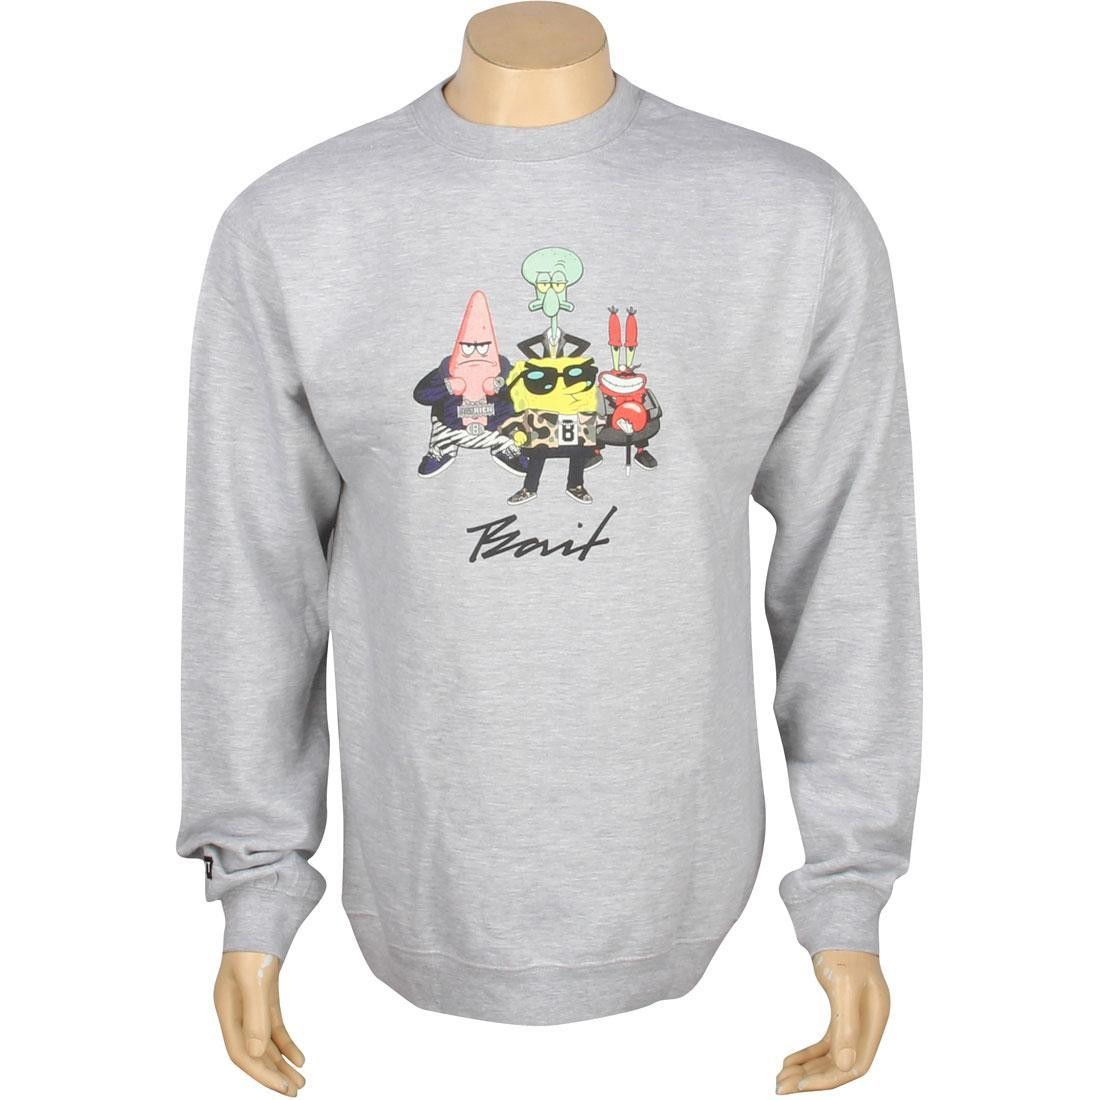 BAIT x SpongeBob Group Crewneck (grey heather)